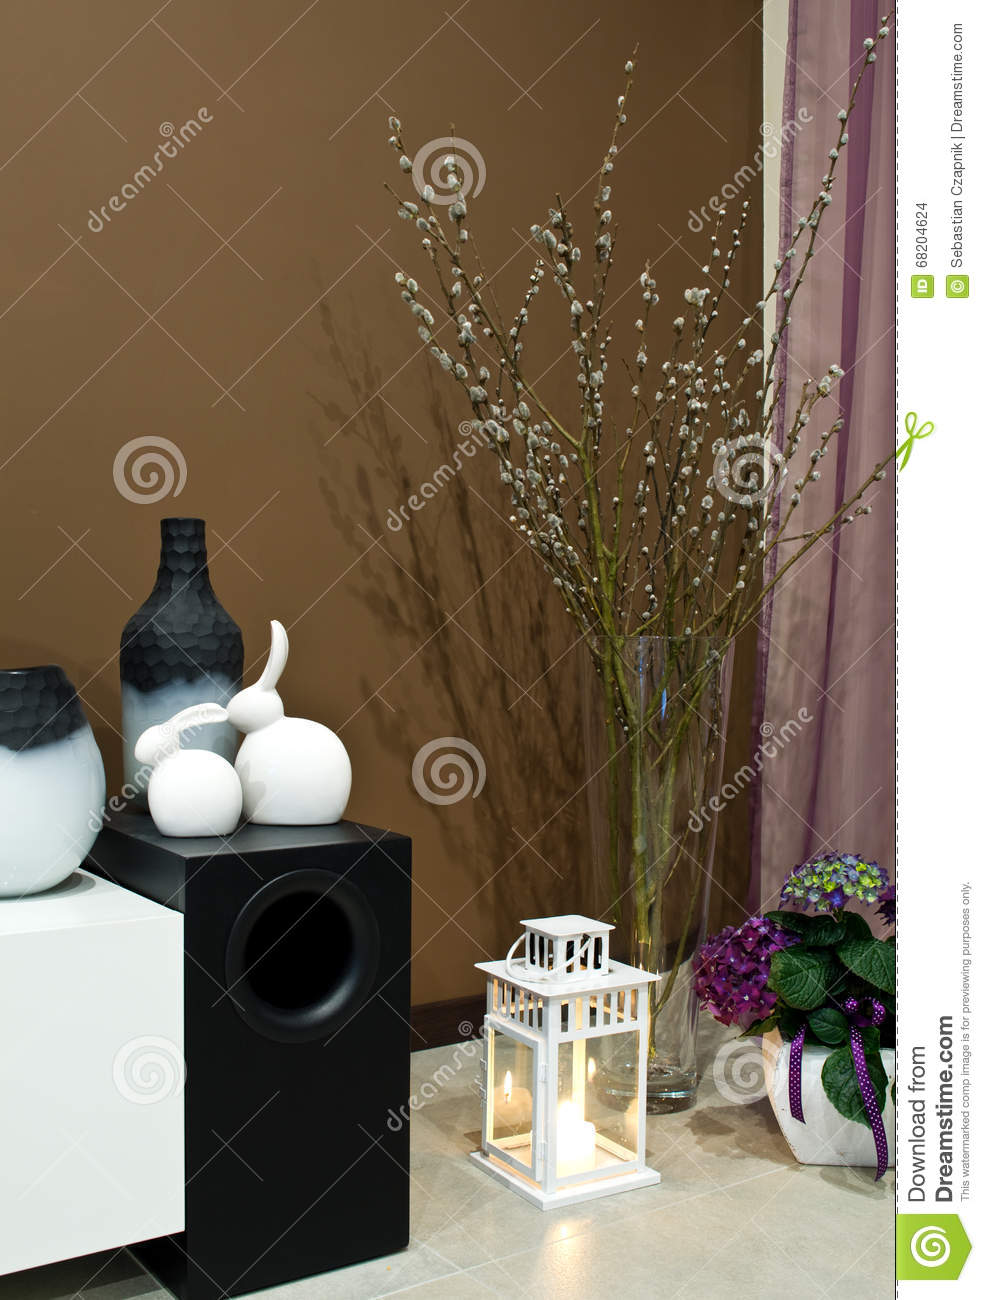 photos of nicely decorated living rooms walmart rugs for room corner stock photo image vase a with spring branches hydrangea flowers easter bunnies on bass loudspeaker home decoration concept